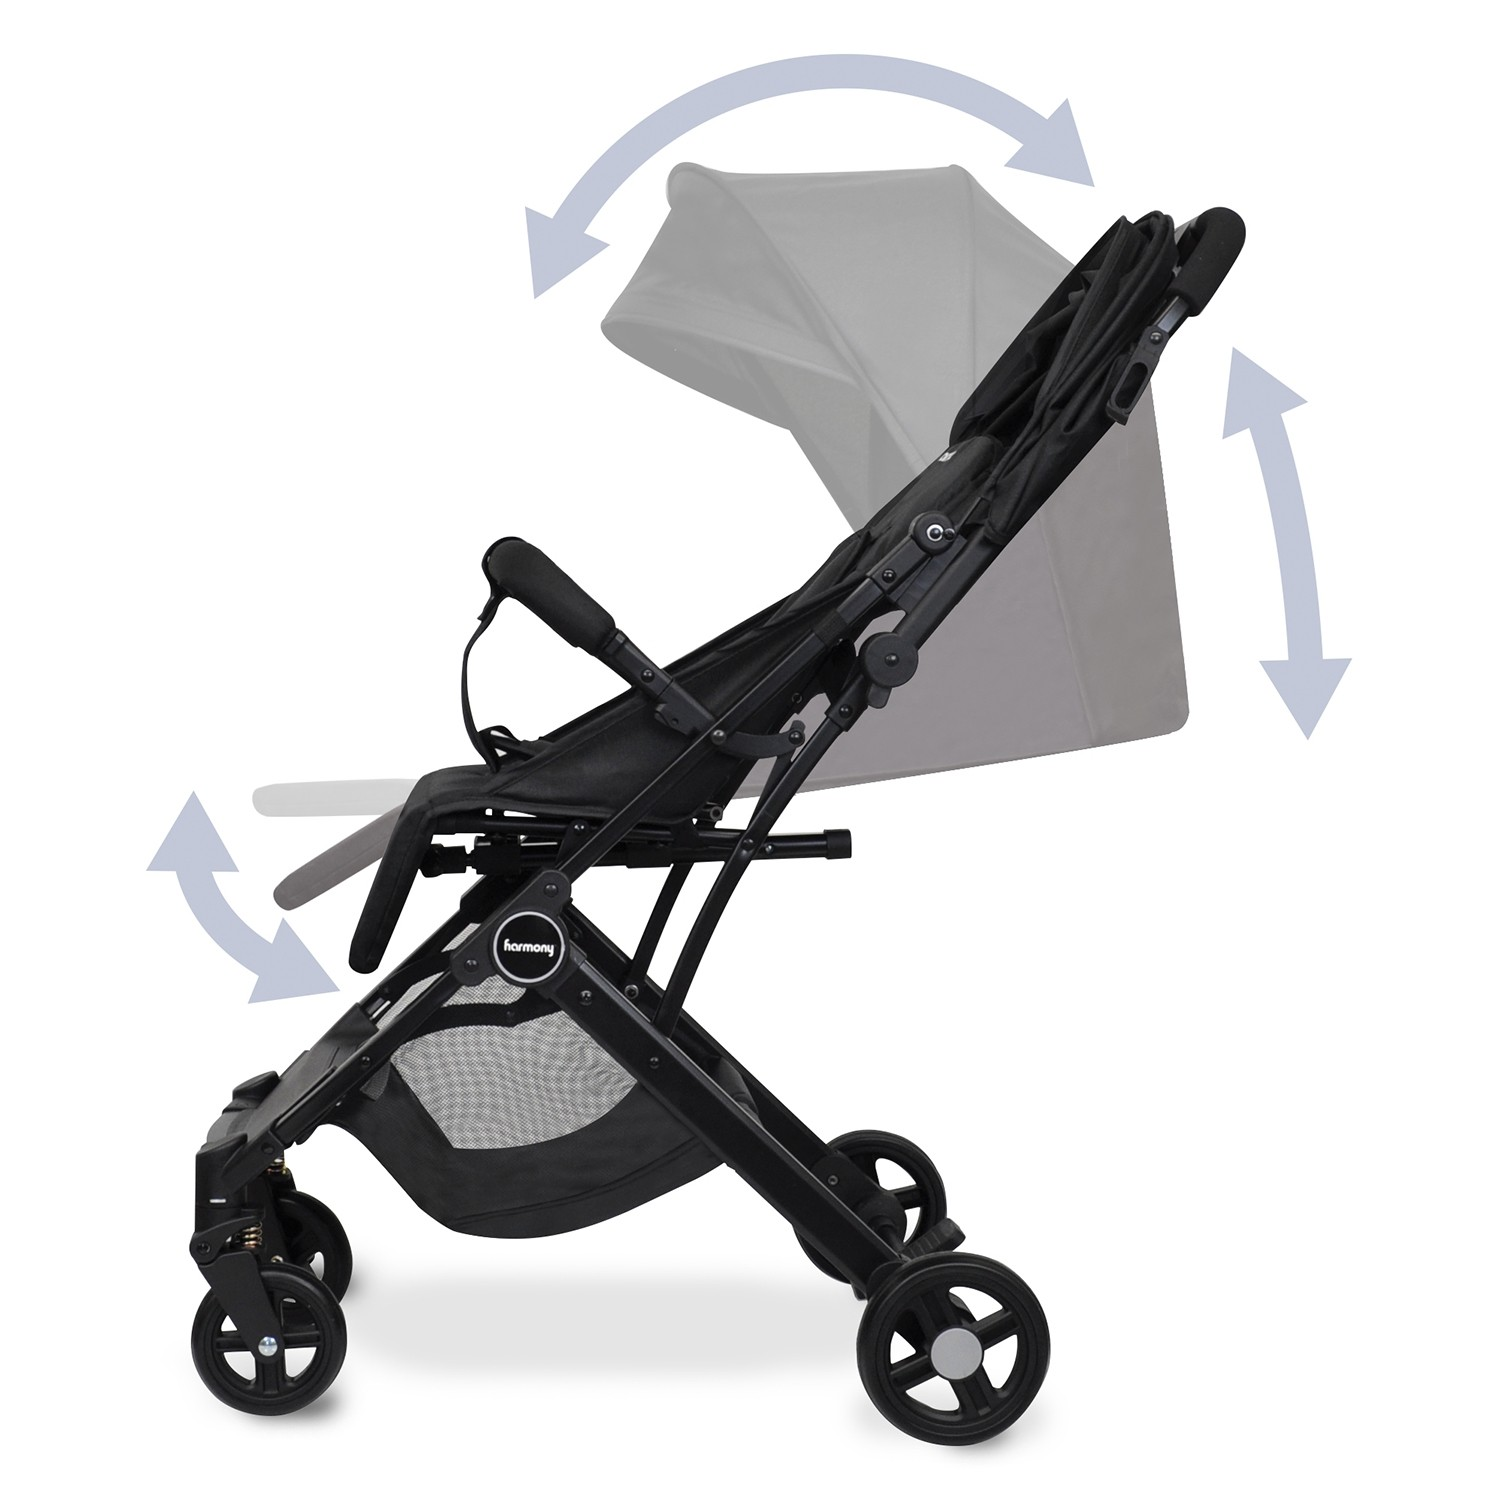 Urban Deluxe Microfold Pushchair